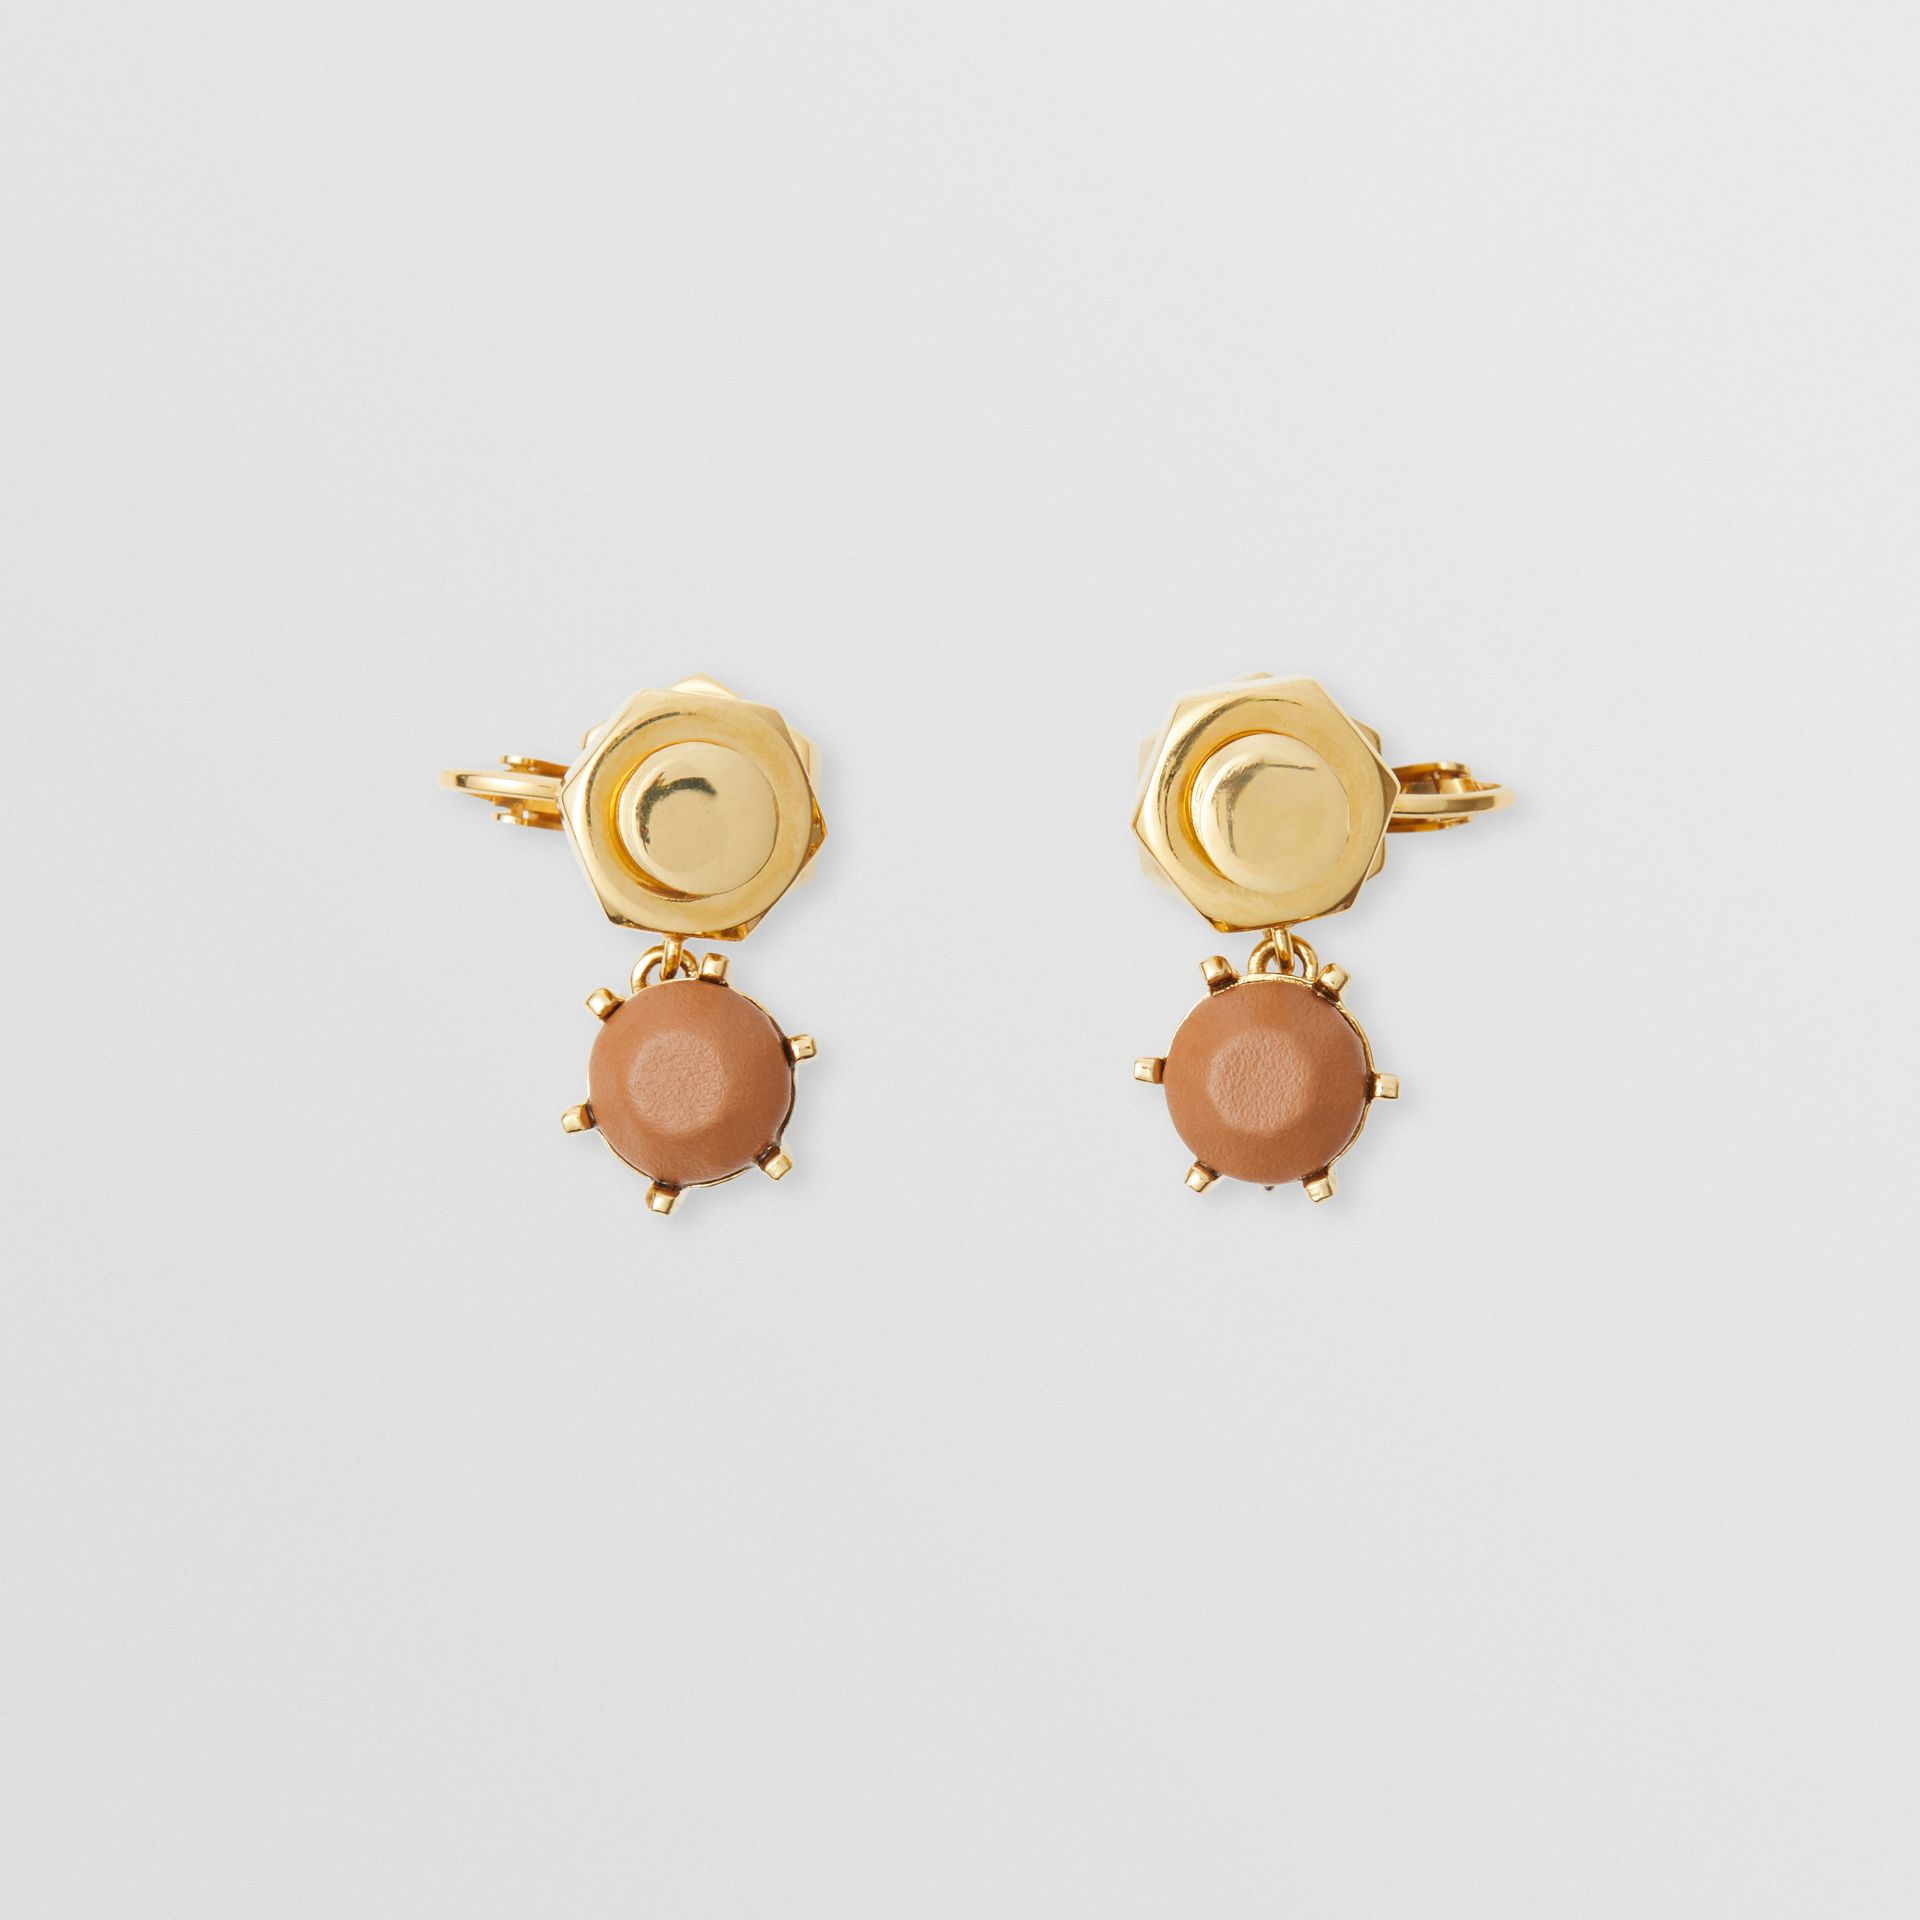 Leather Charm Gold-plated Nut and Bolt Earrings in Nutmeg/light - Women | Burberry Australia - gallery image 0